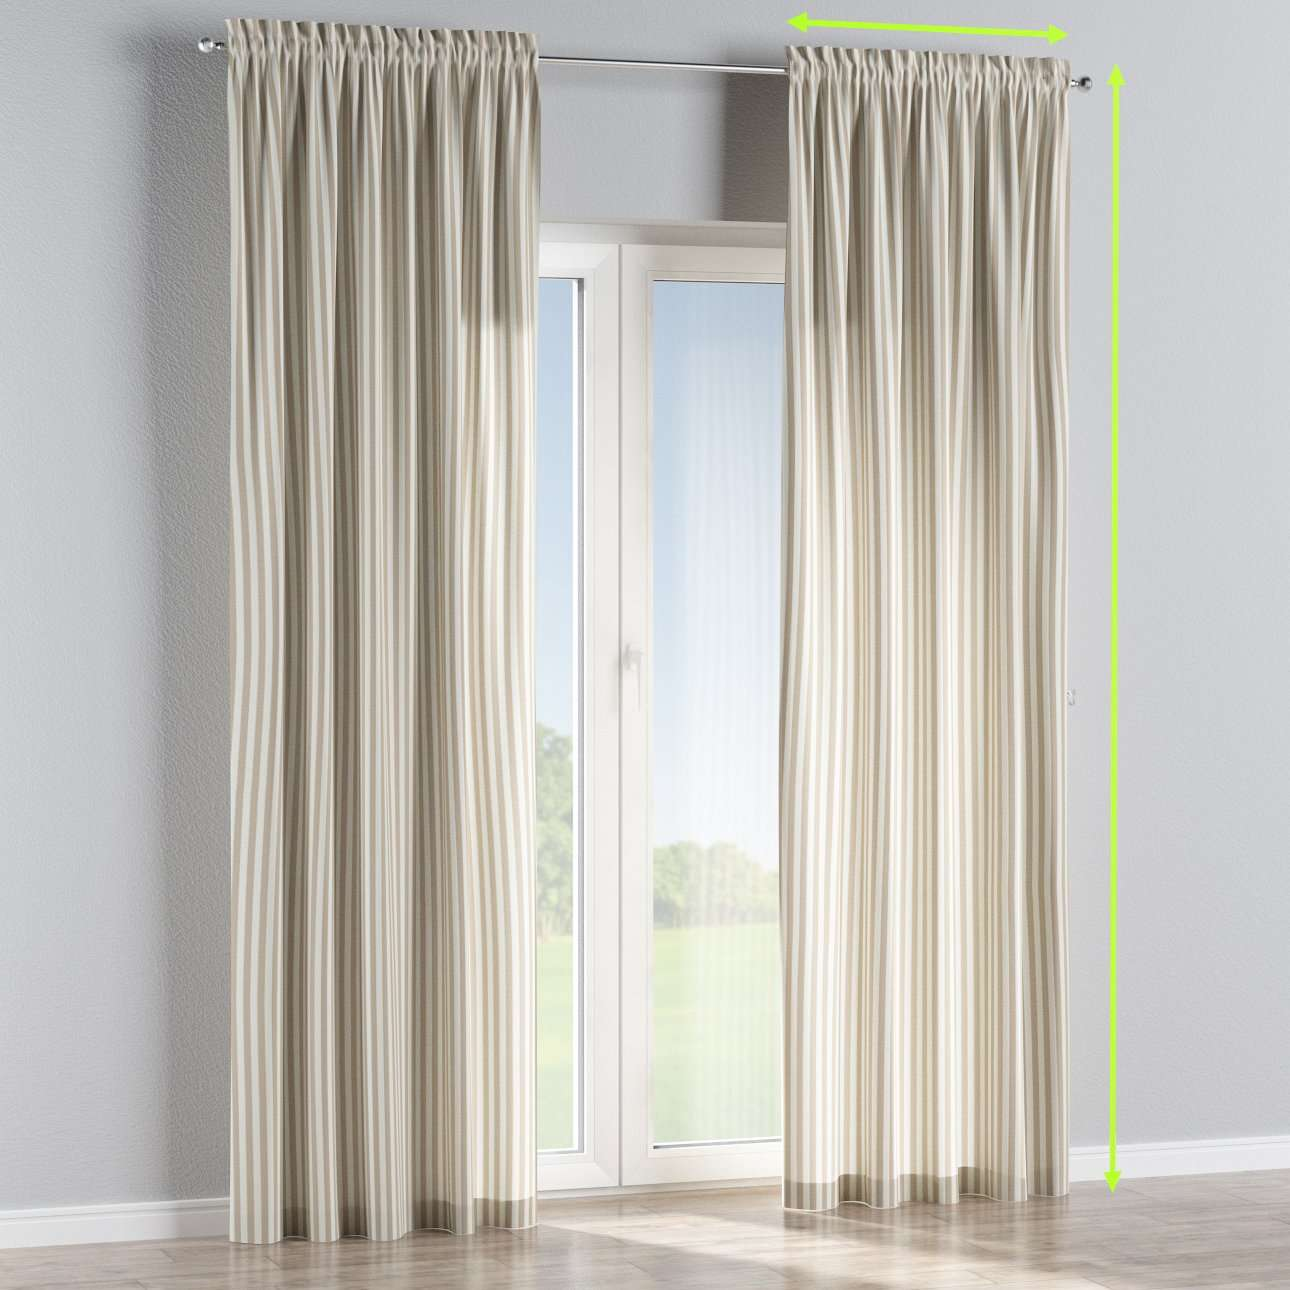 Slot and frill curtains in collection Quadro, fabric: 136-07